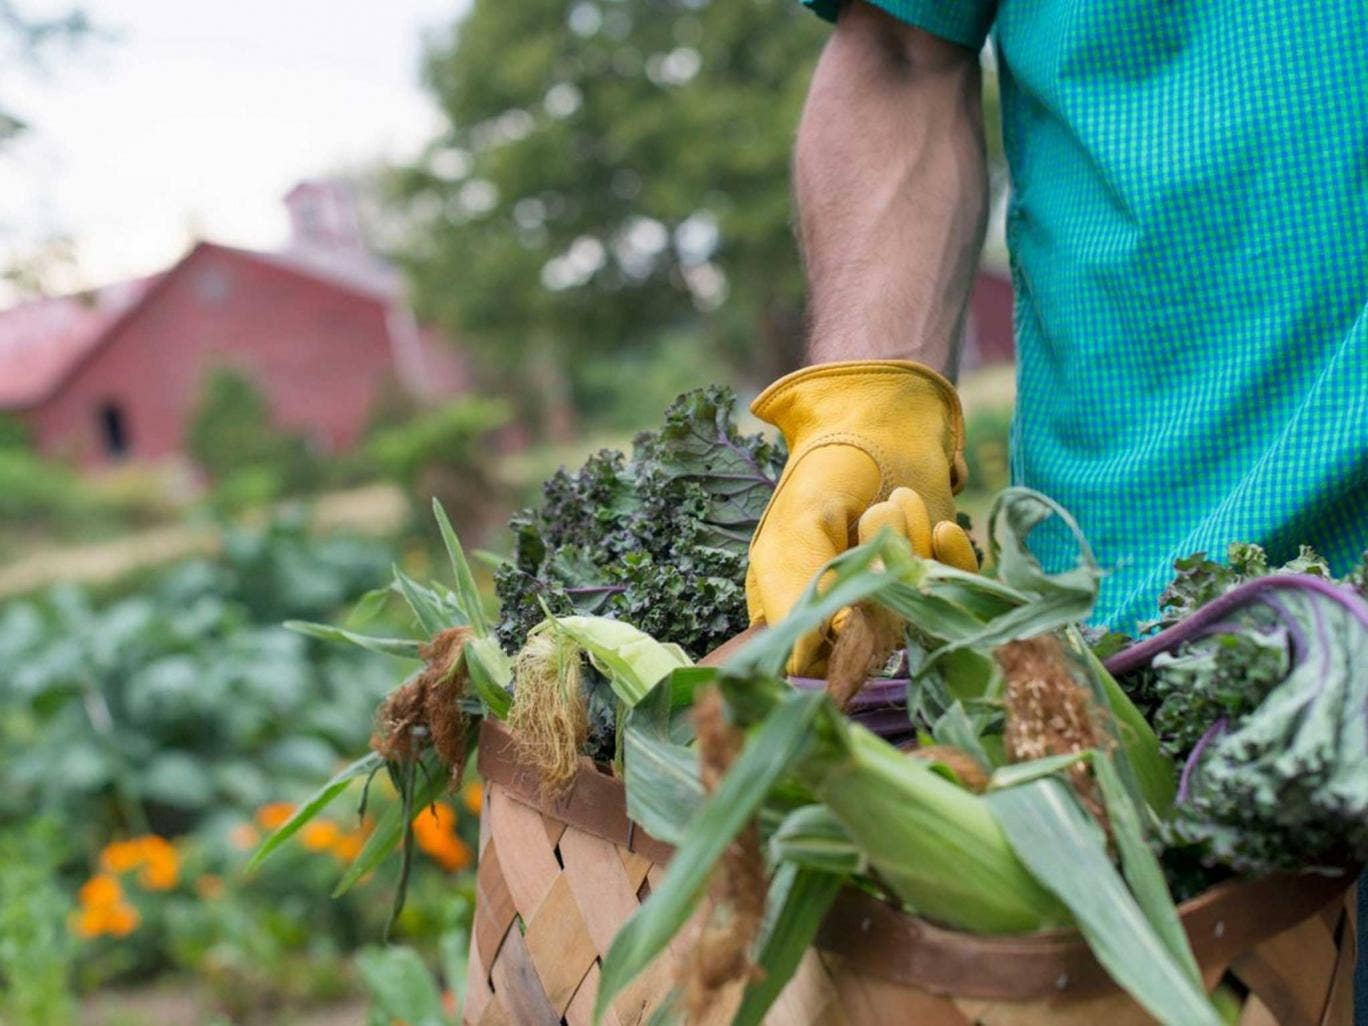 There are no fungicides for vegetables although there are for fruit  and flowers